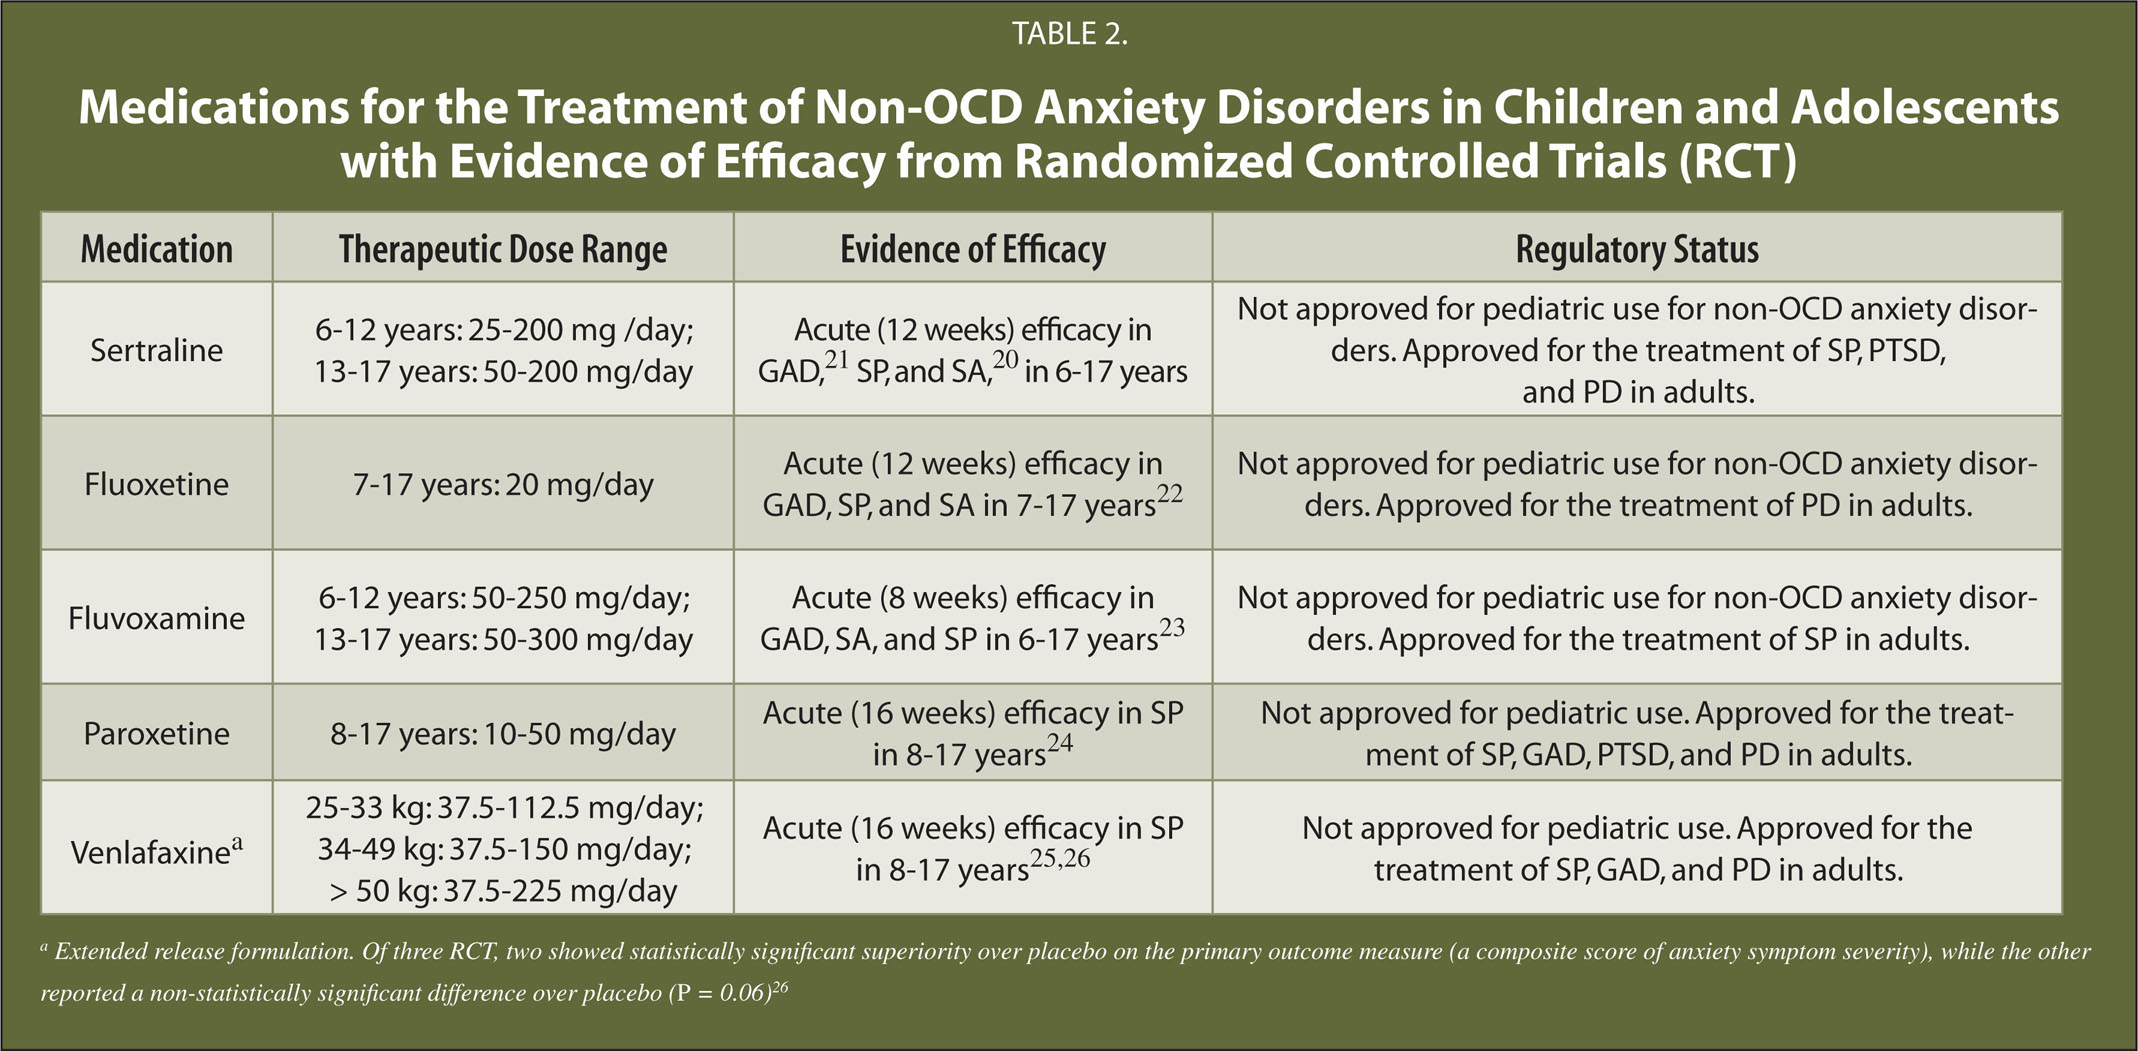 Icd 10 Generalized Anxiety Disorder